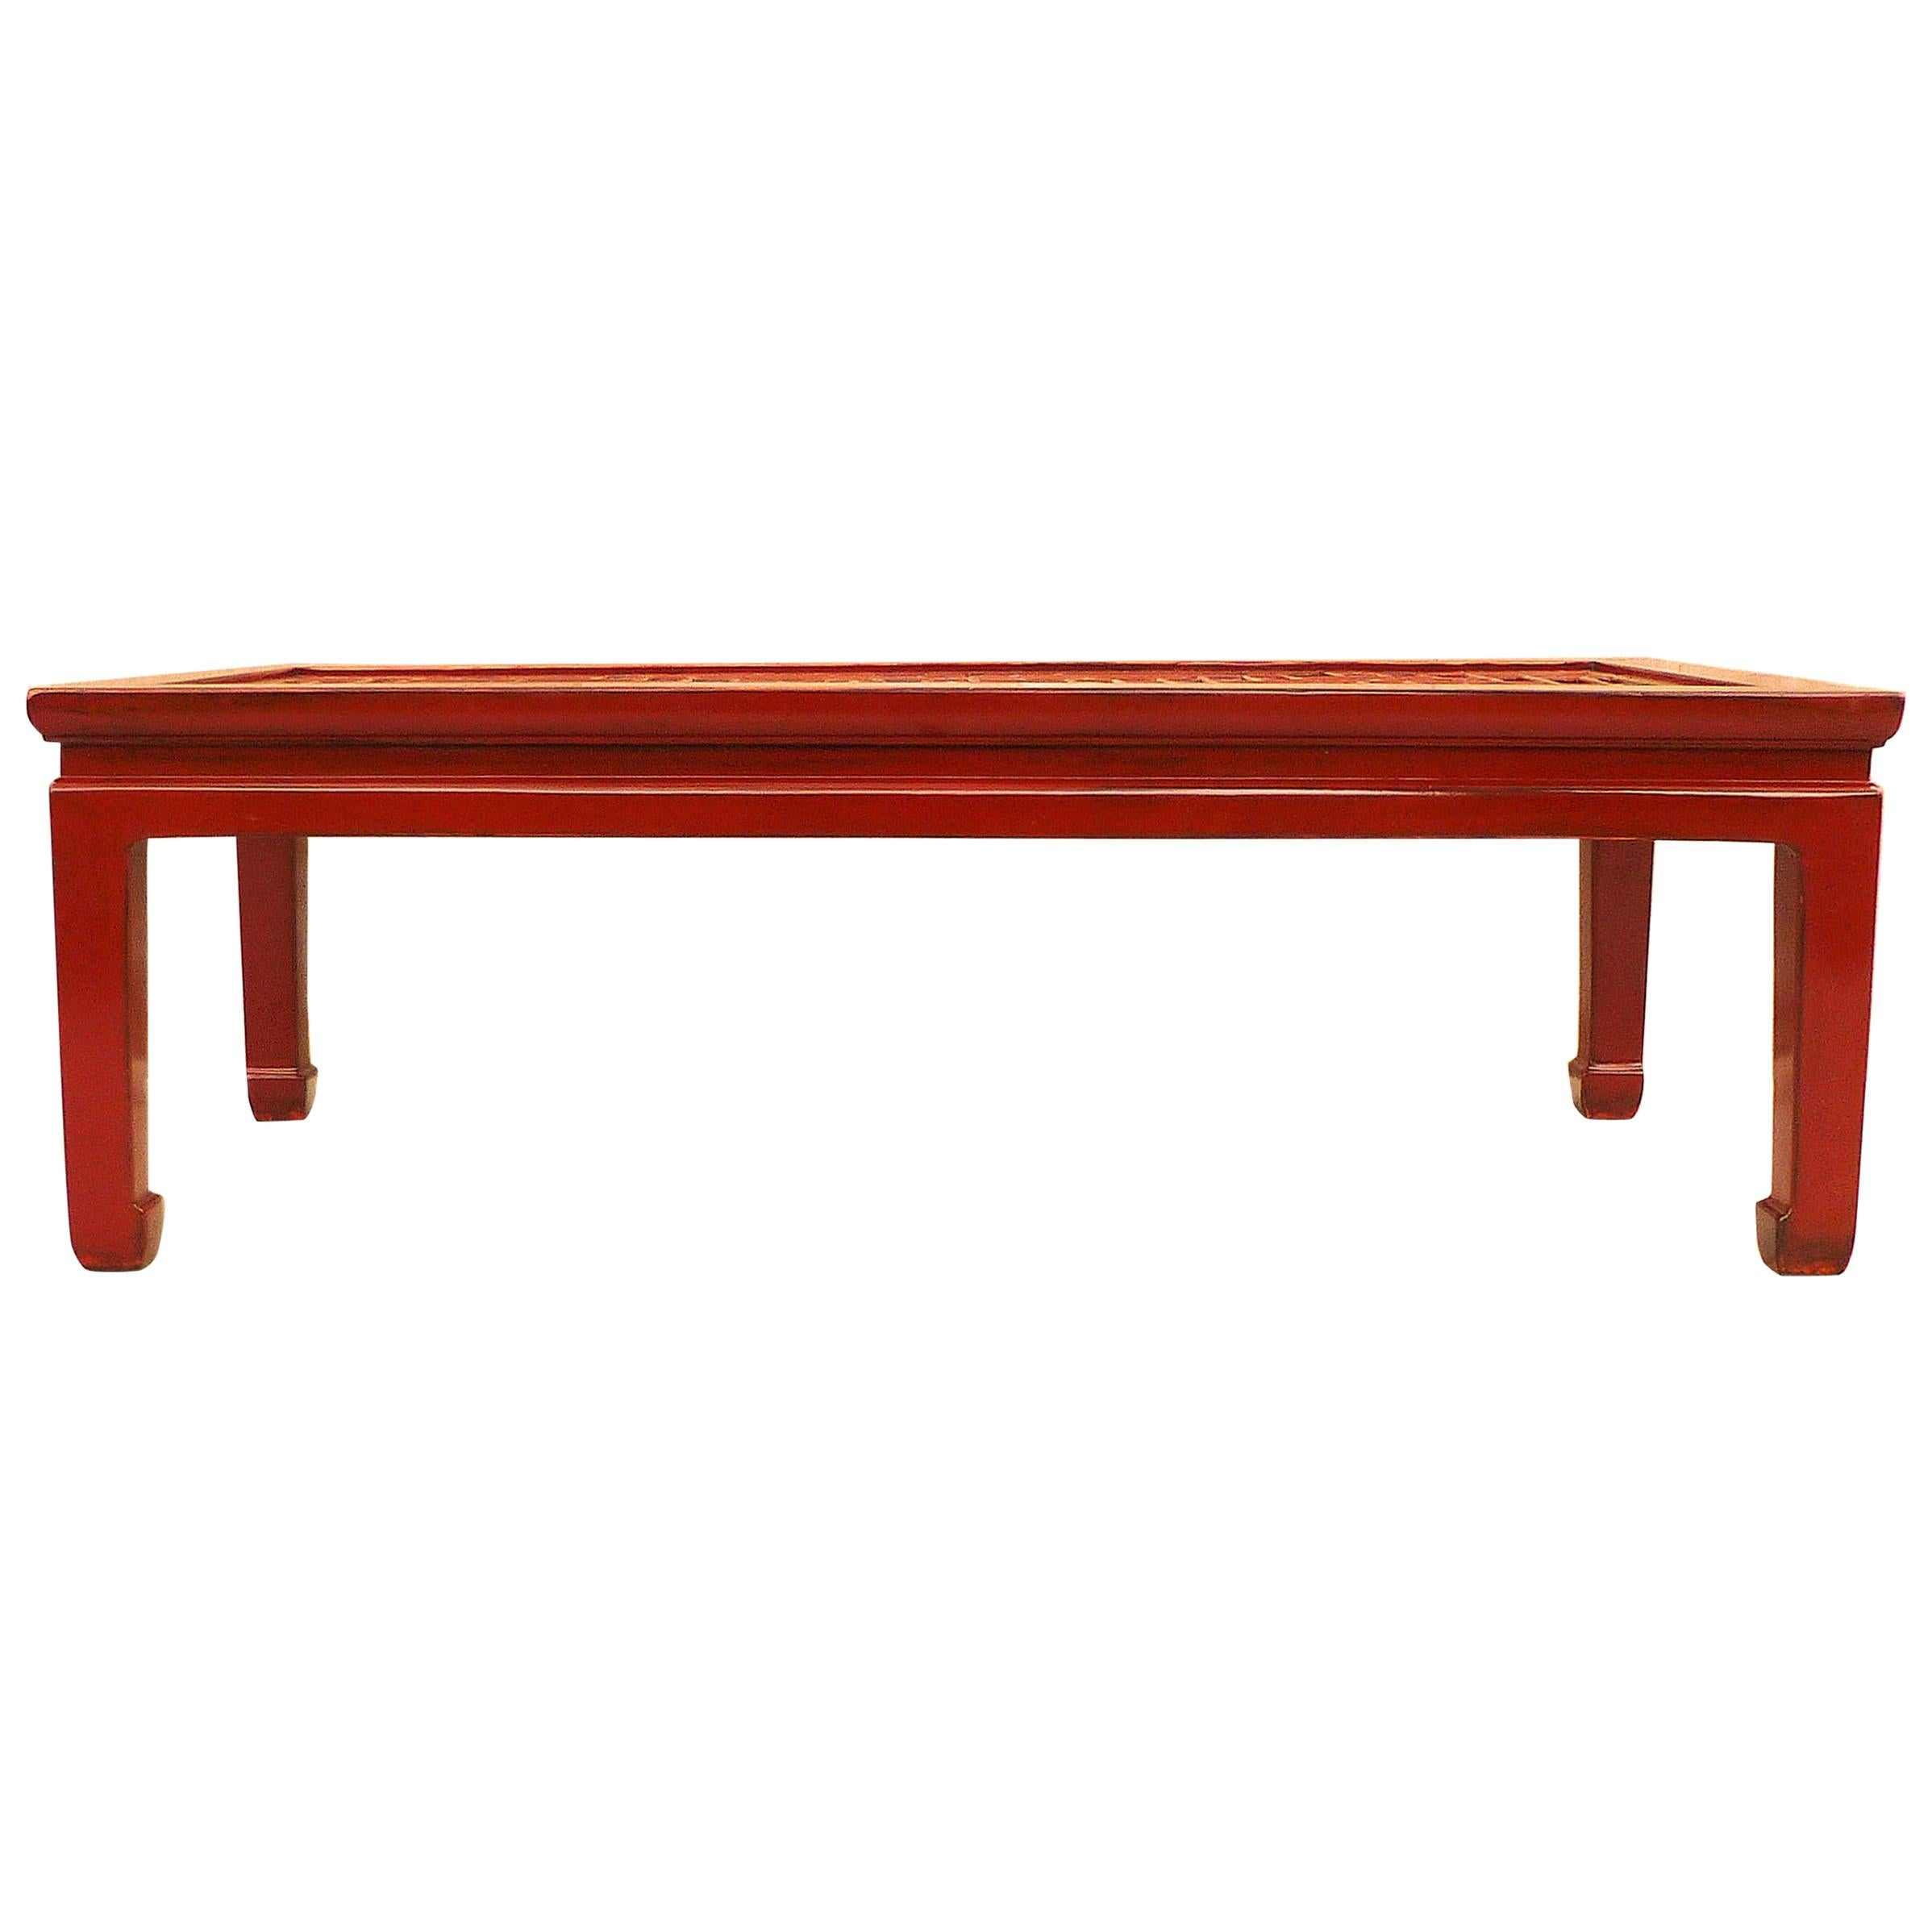 Fine Red Lacquer Low Table with Fret Work Top